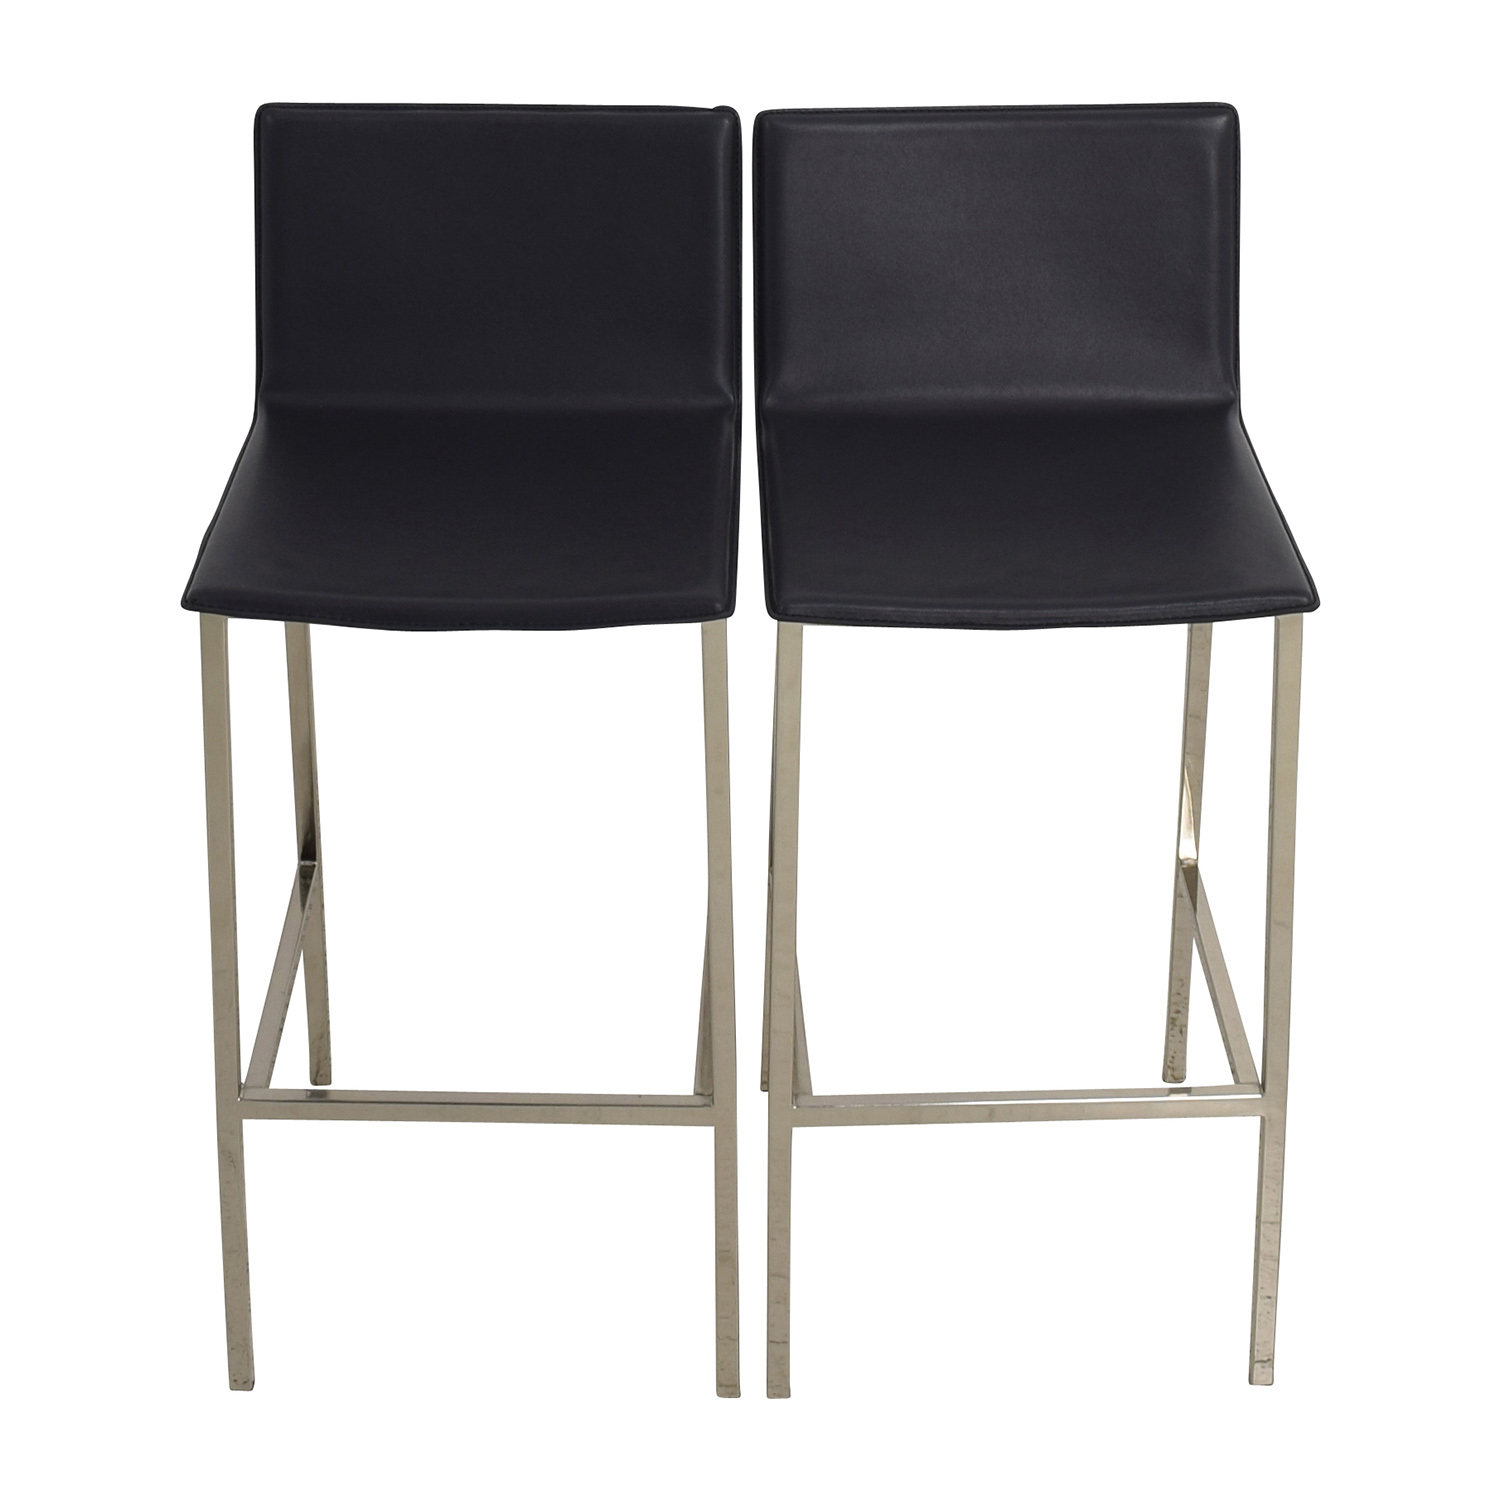 shop CB2 Phoenix Carbon Grey Black Leather Bar Stools CB2